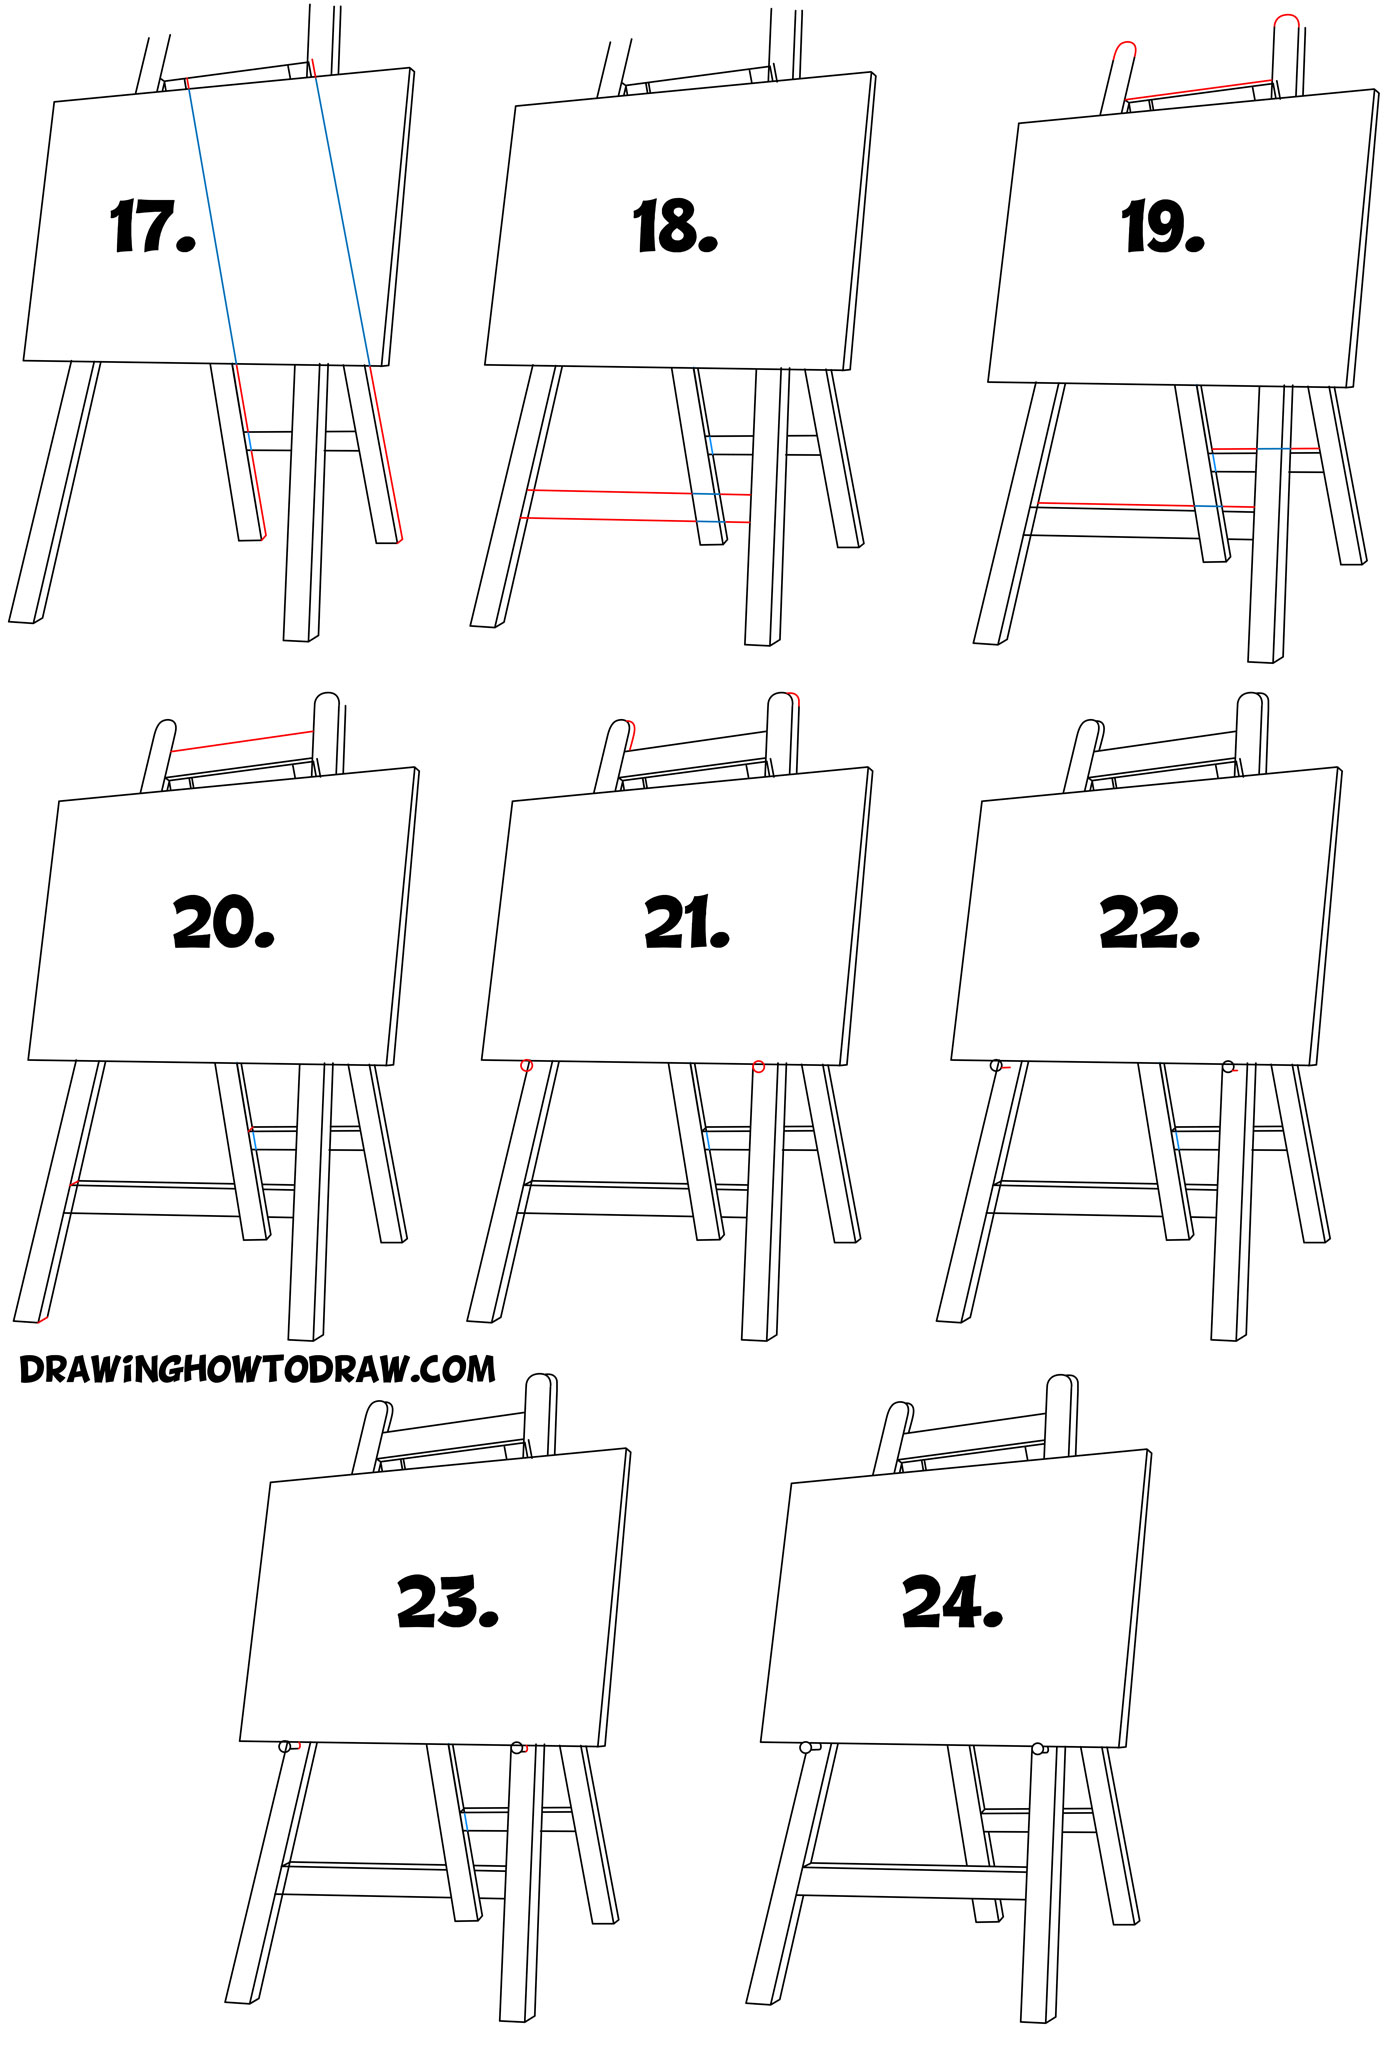 Learn How to Draw an Easel and Canvas - Simple Steps Drawing Lesson for Beginners